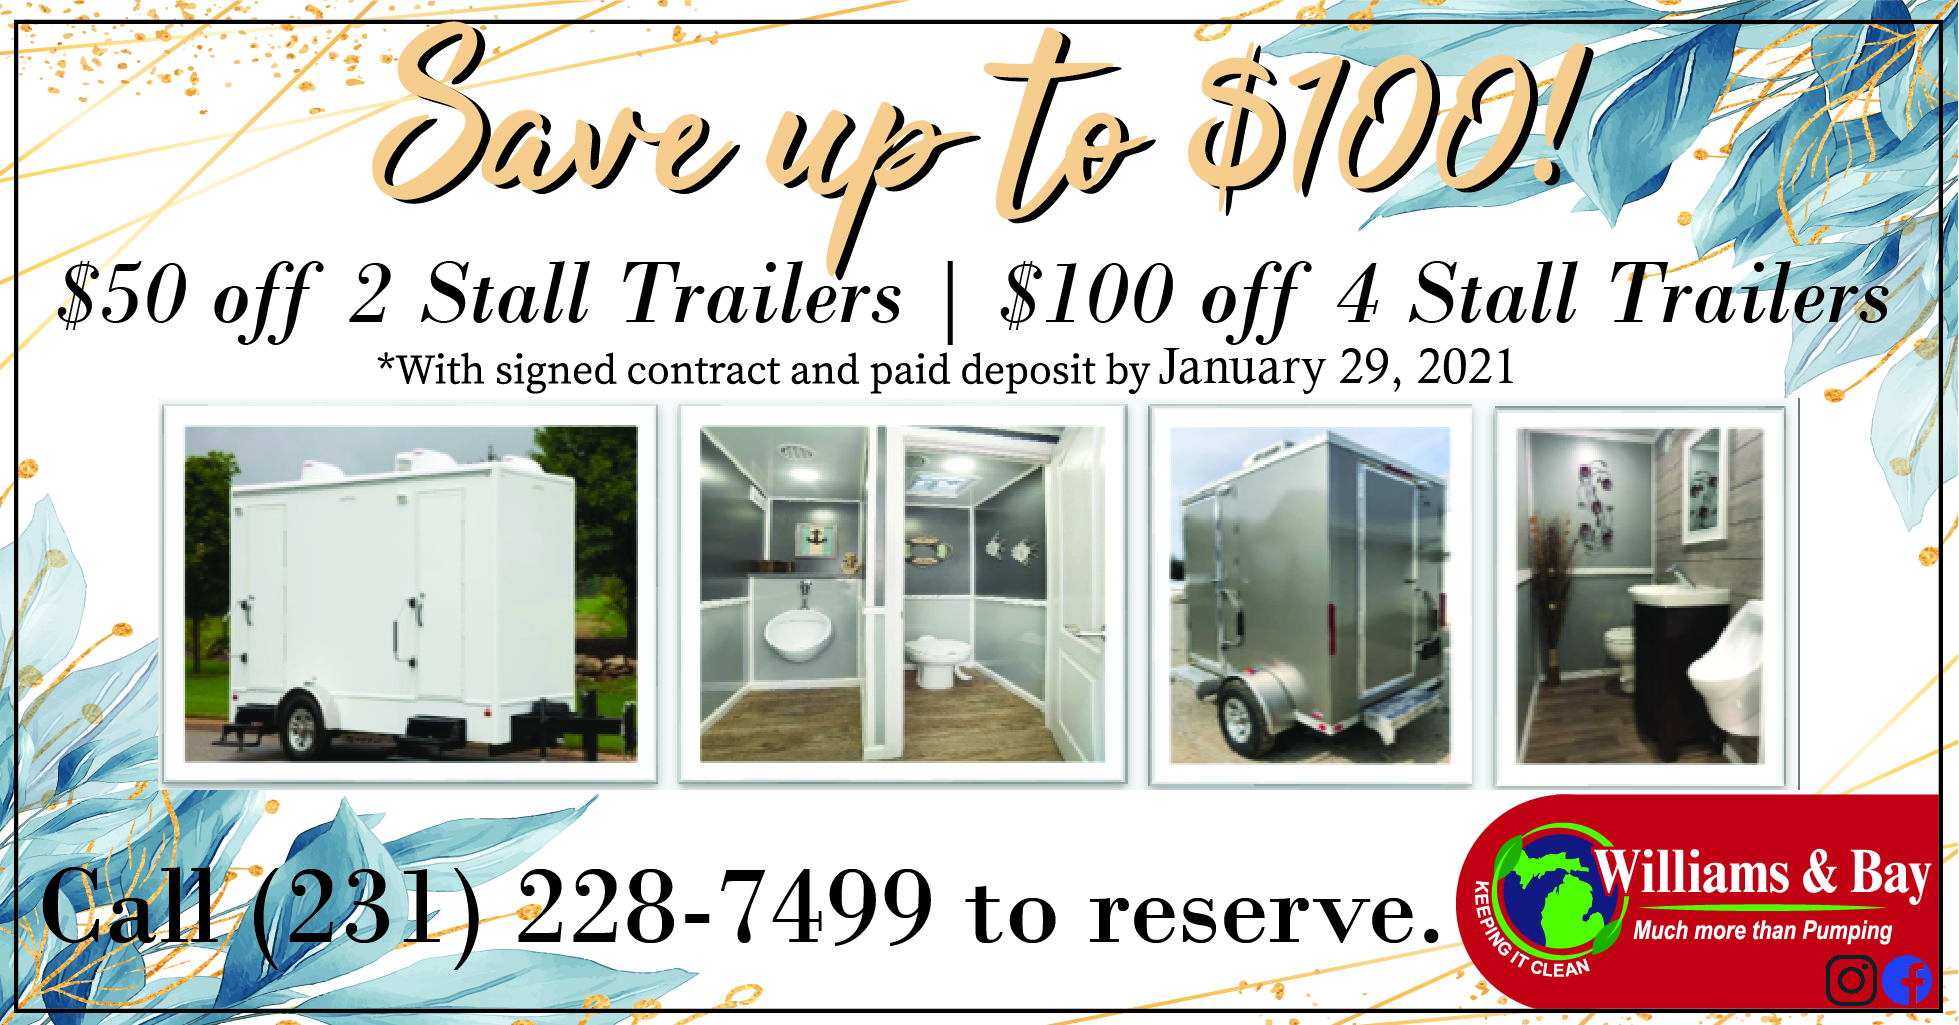 WEDDING Special - Portable Restrooms - W